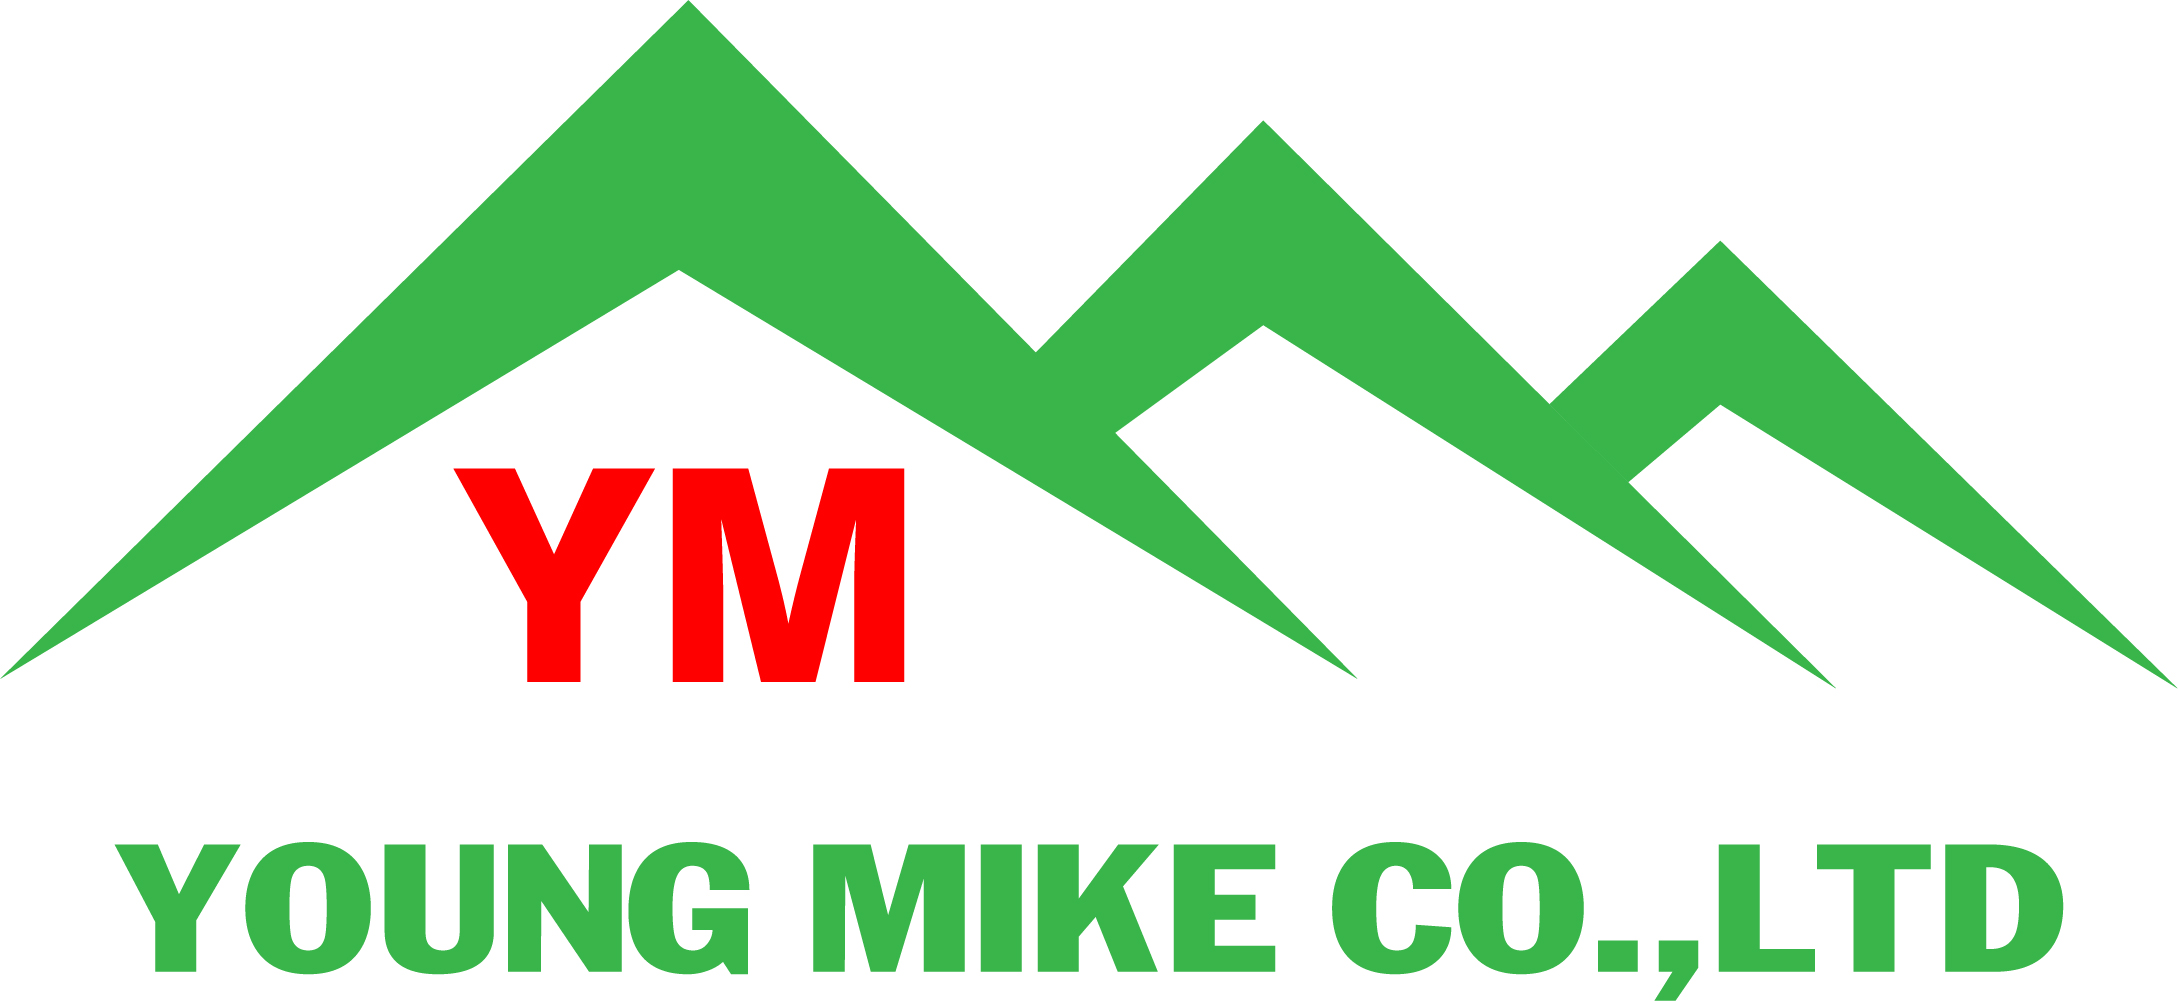 YOUNG MIKE CO., LTD